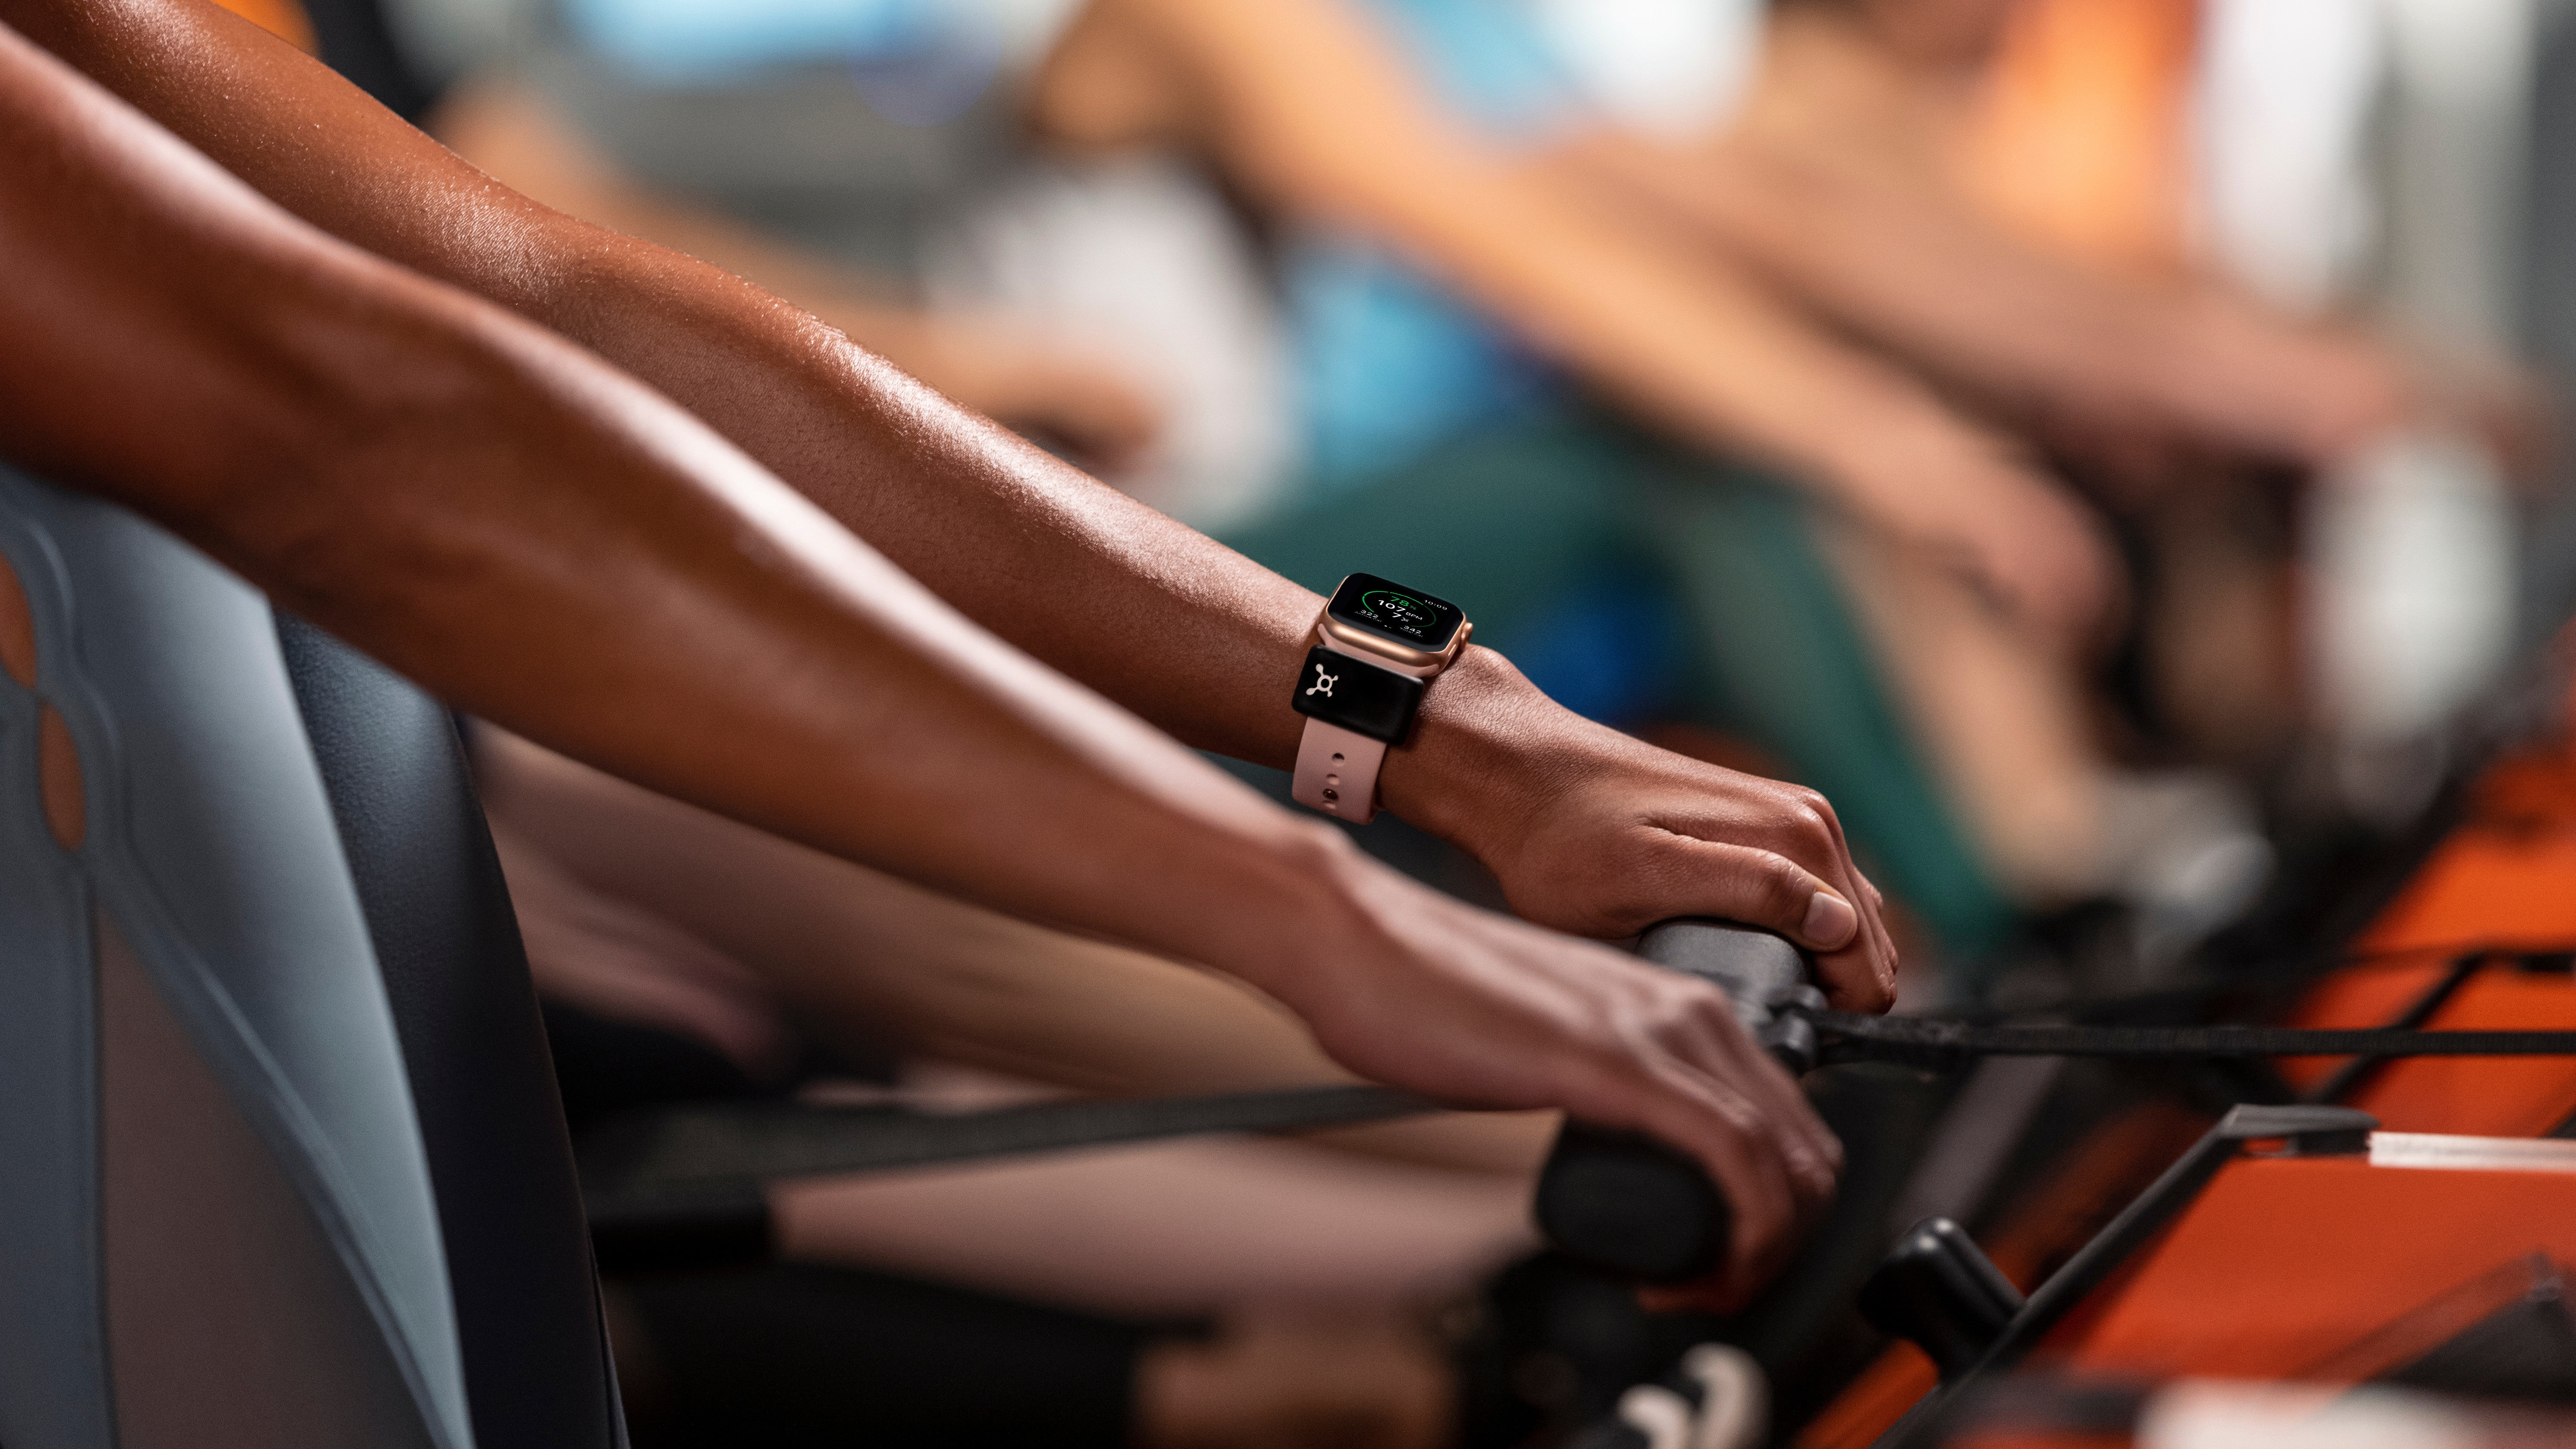 Apple And Orangetheory Partnering For An Even Smoother High Tech Gym Experience